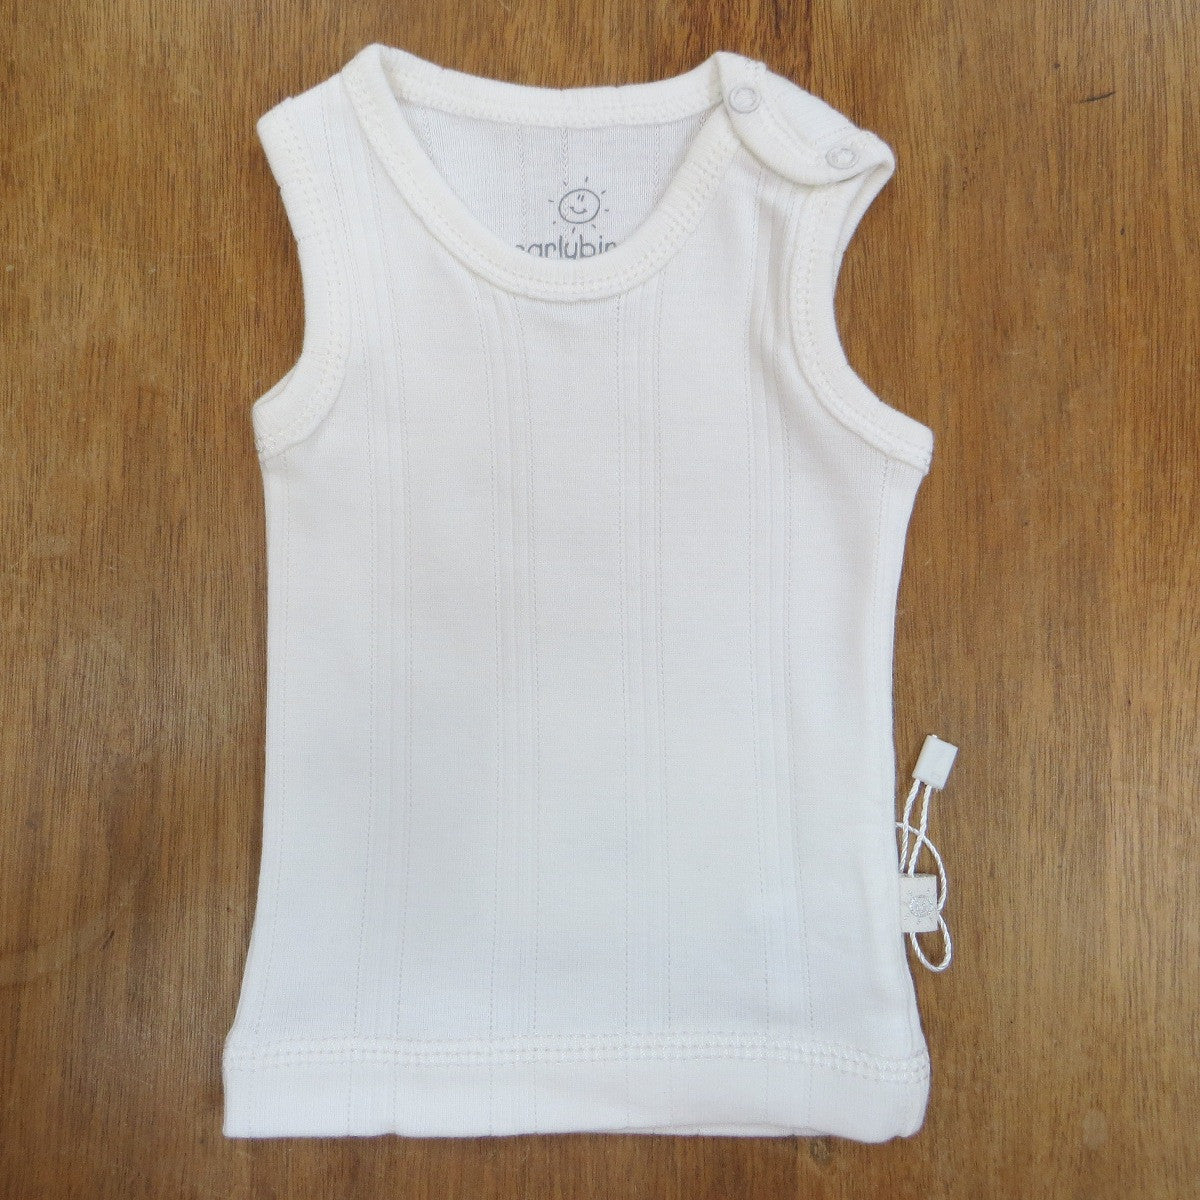 Cotton singlet is lightweight and features an opening on one shoulder